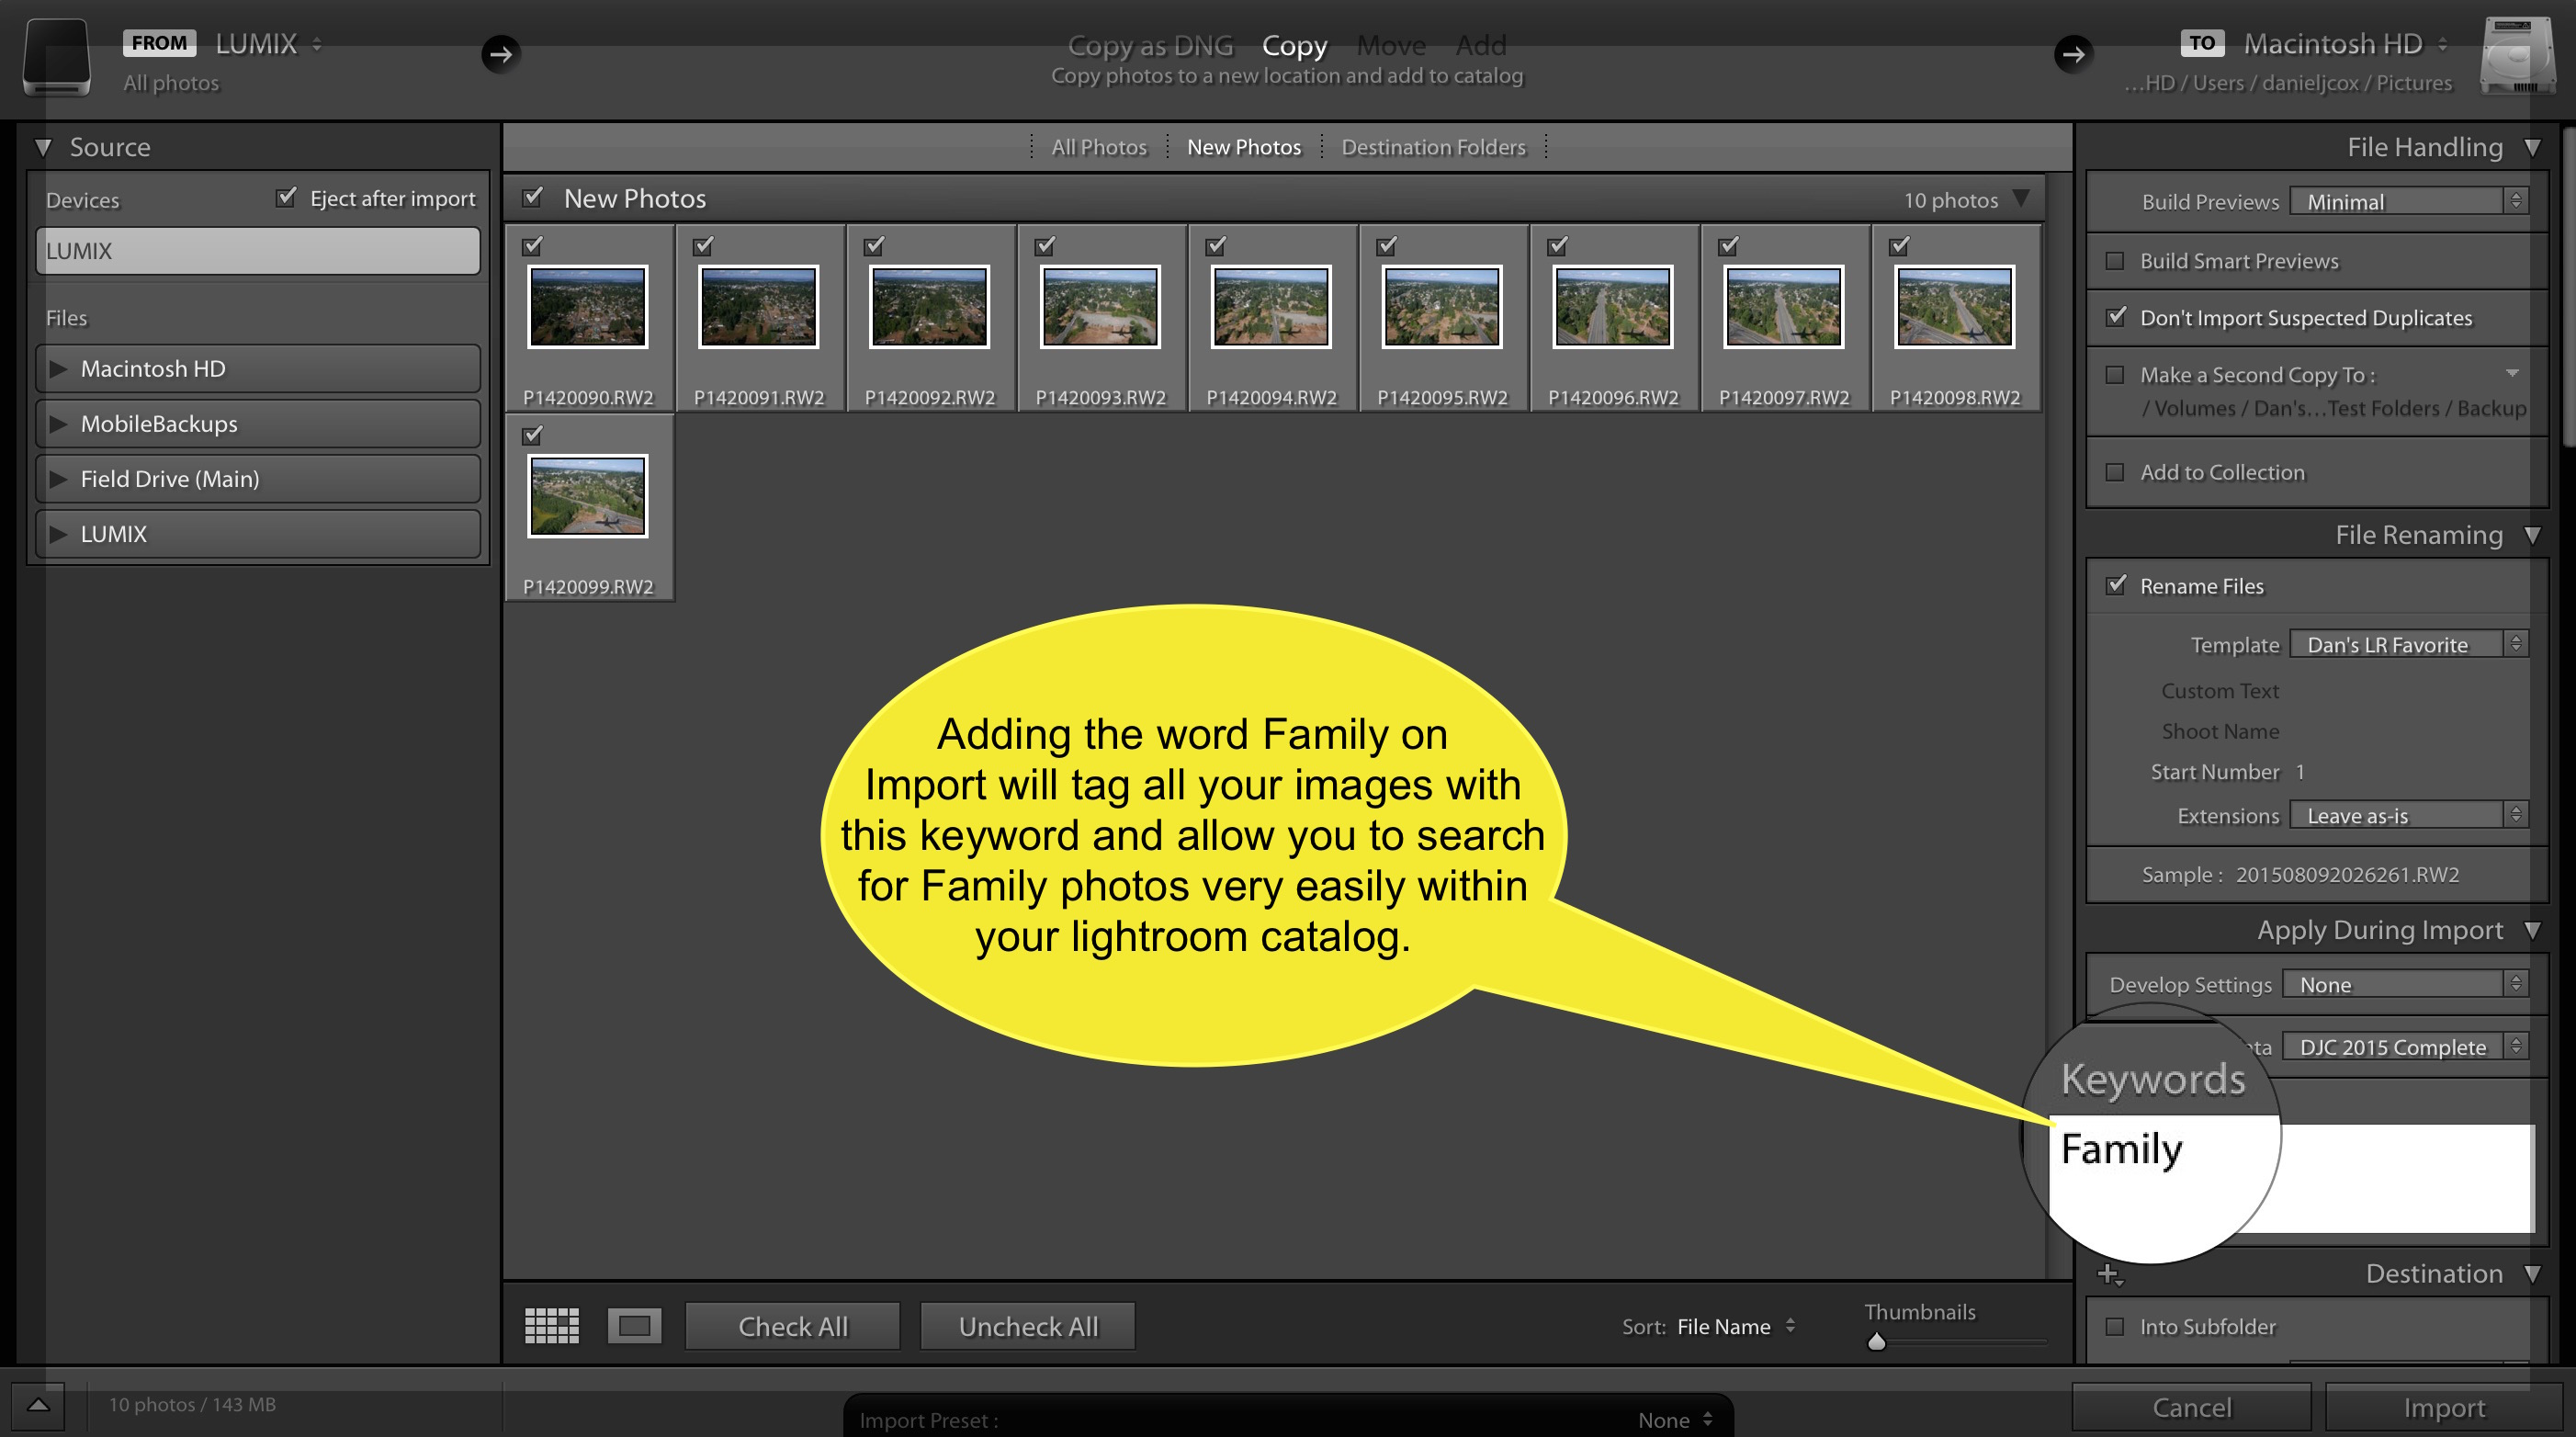 A screen shot explaining the import process where you can add the Keyword family to all your photos on Import.